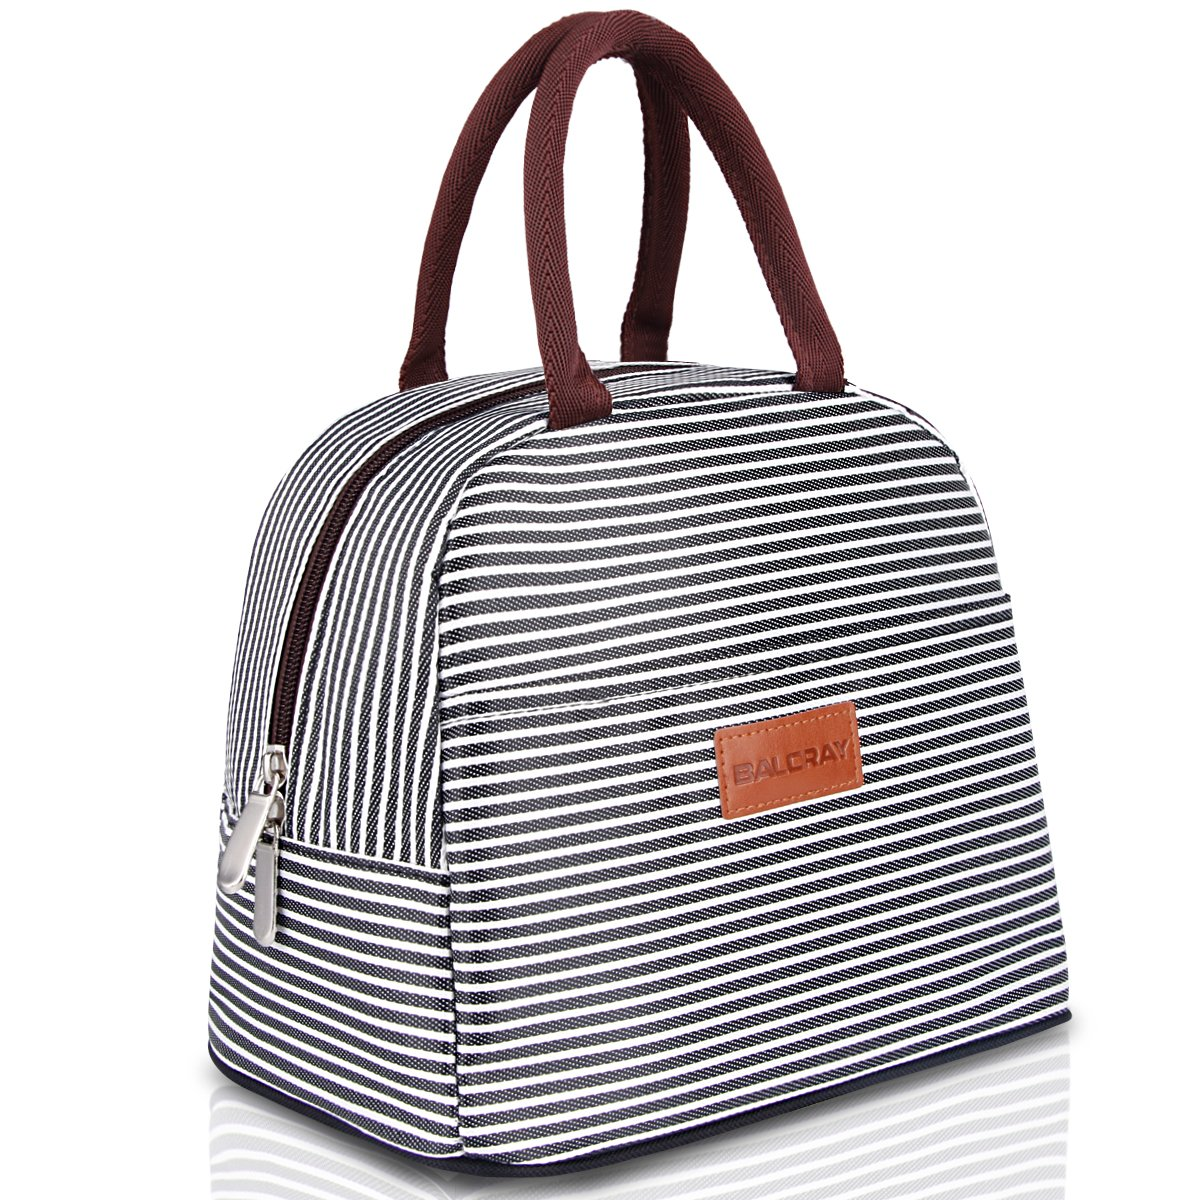 BALORAY Lunch Bag Tote Bag Lunch Organizer Lunch Holder Lunch Container (Brown White Stripes) by BALORAY